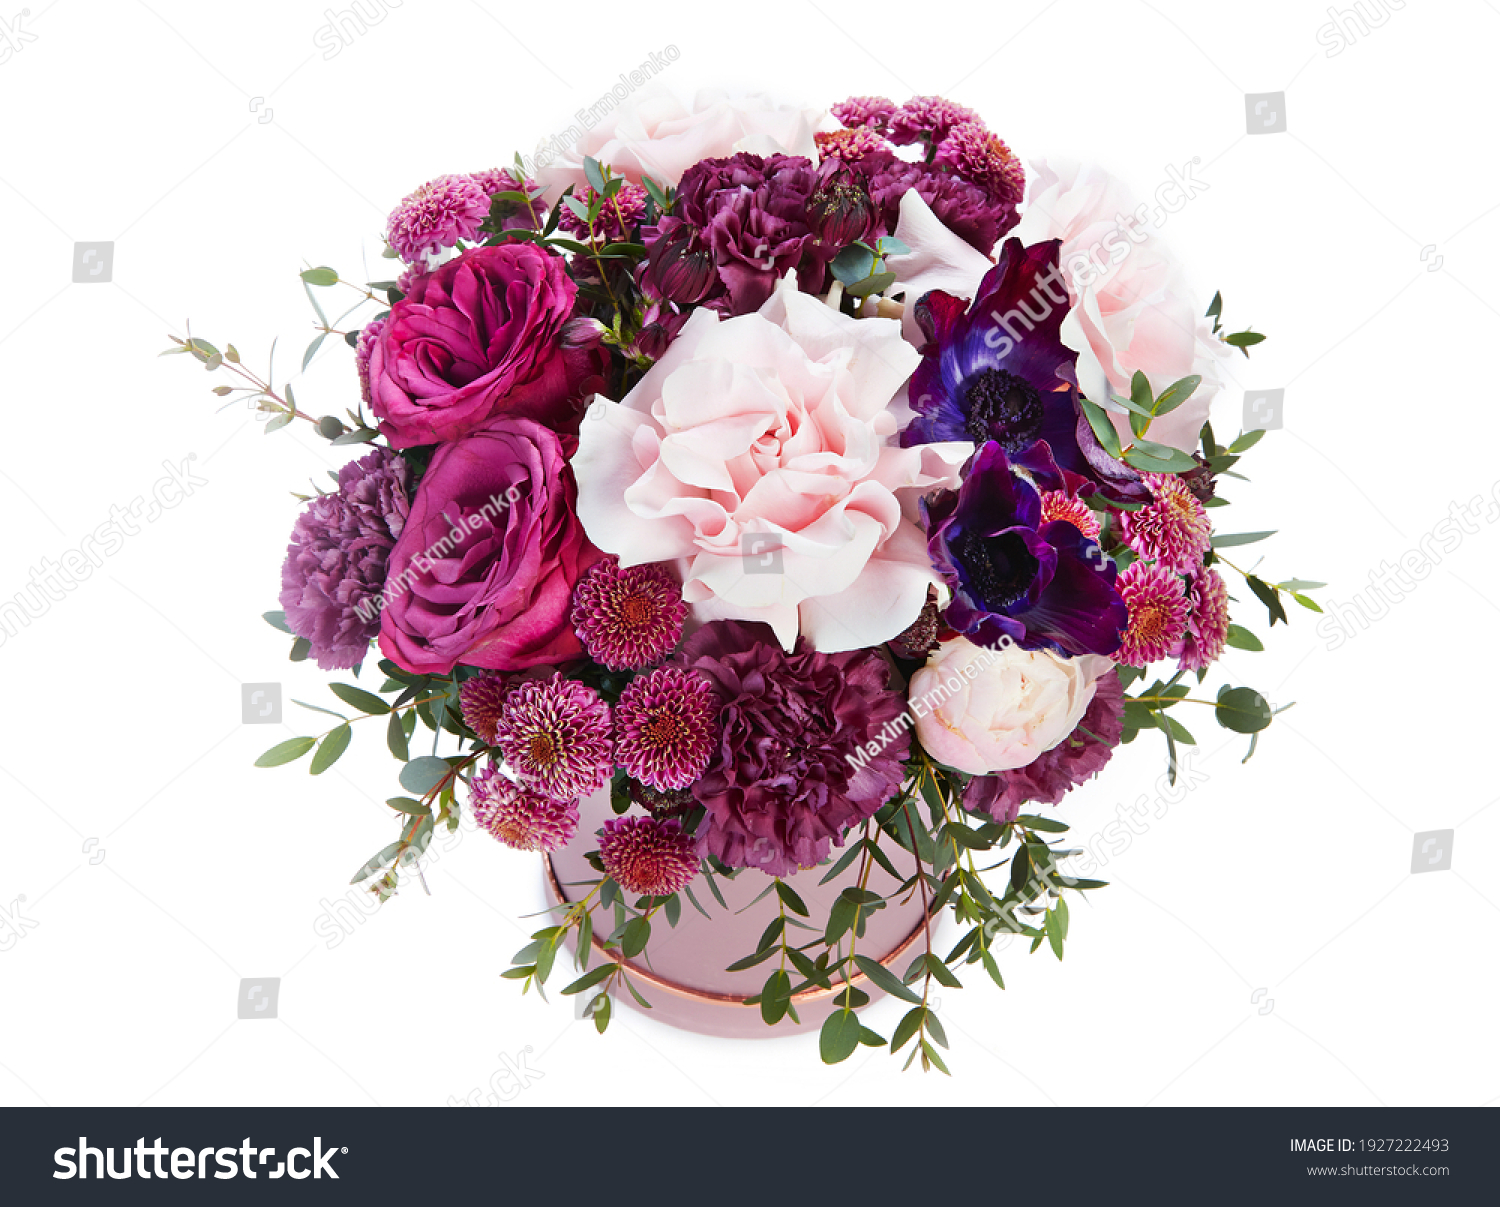 wedding bouquet  isolated on white. Fresh, lush bouquet of colorful flowers #1927222493